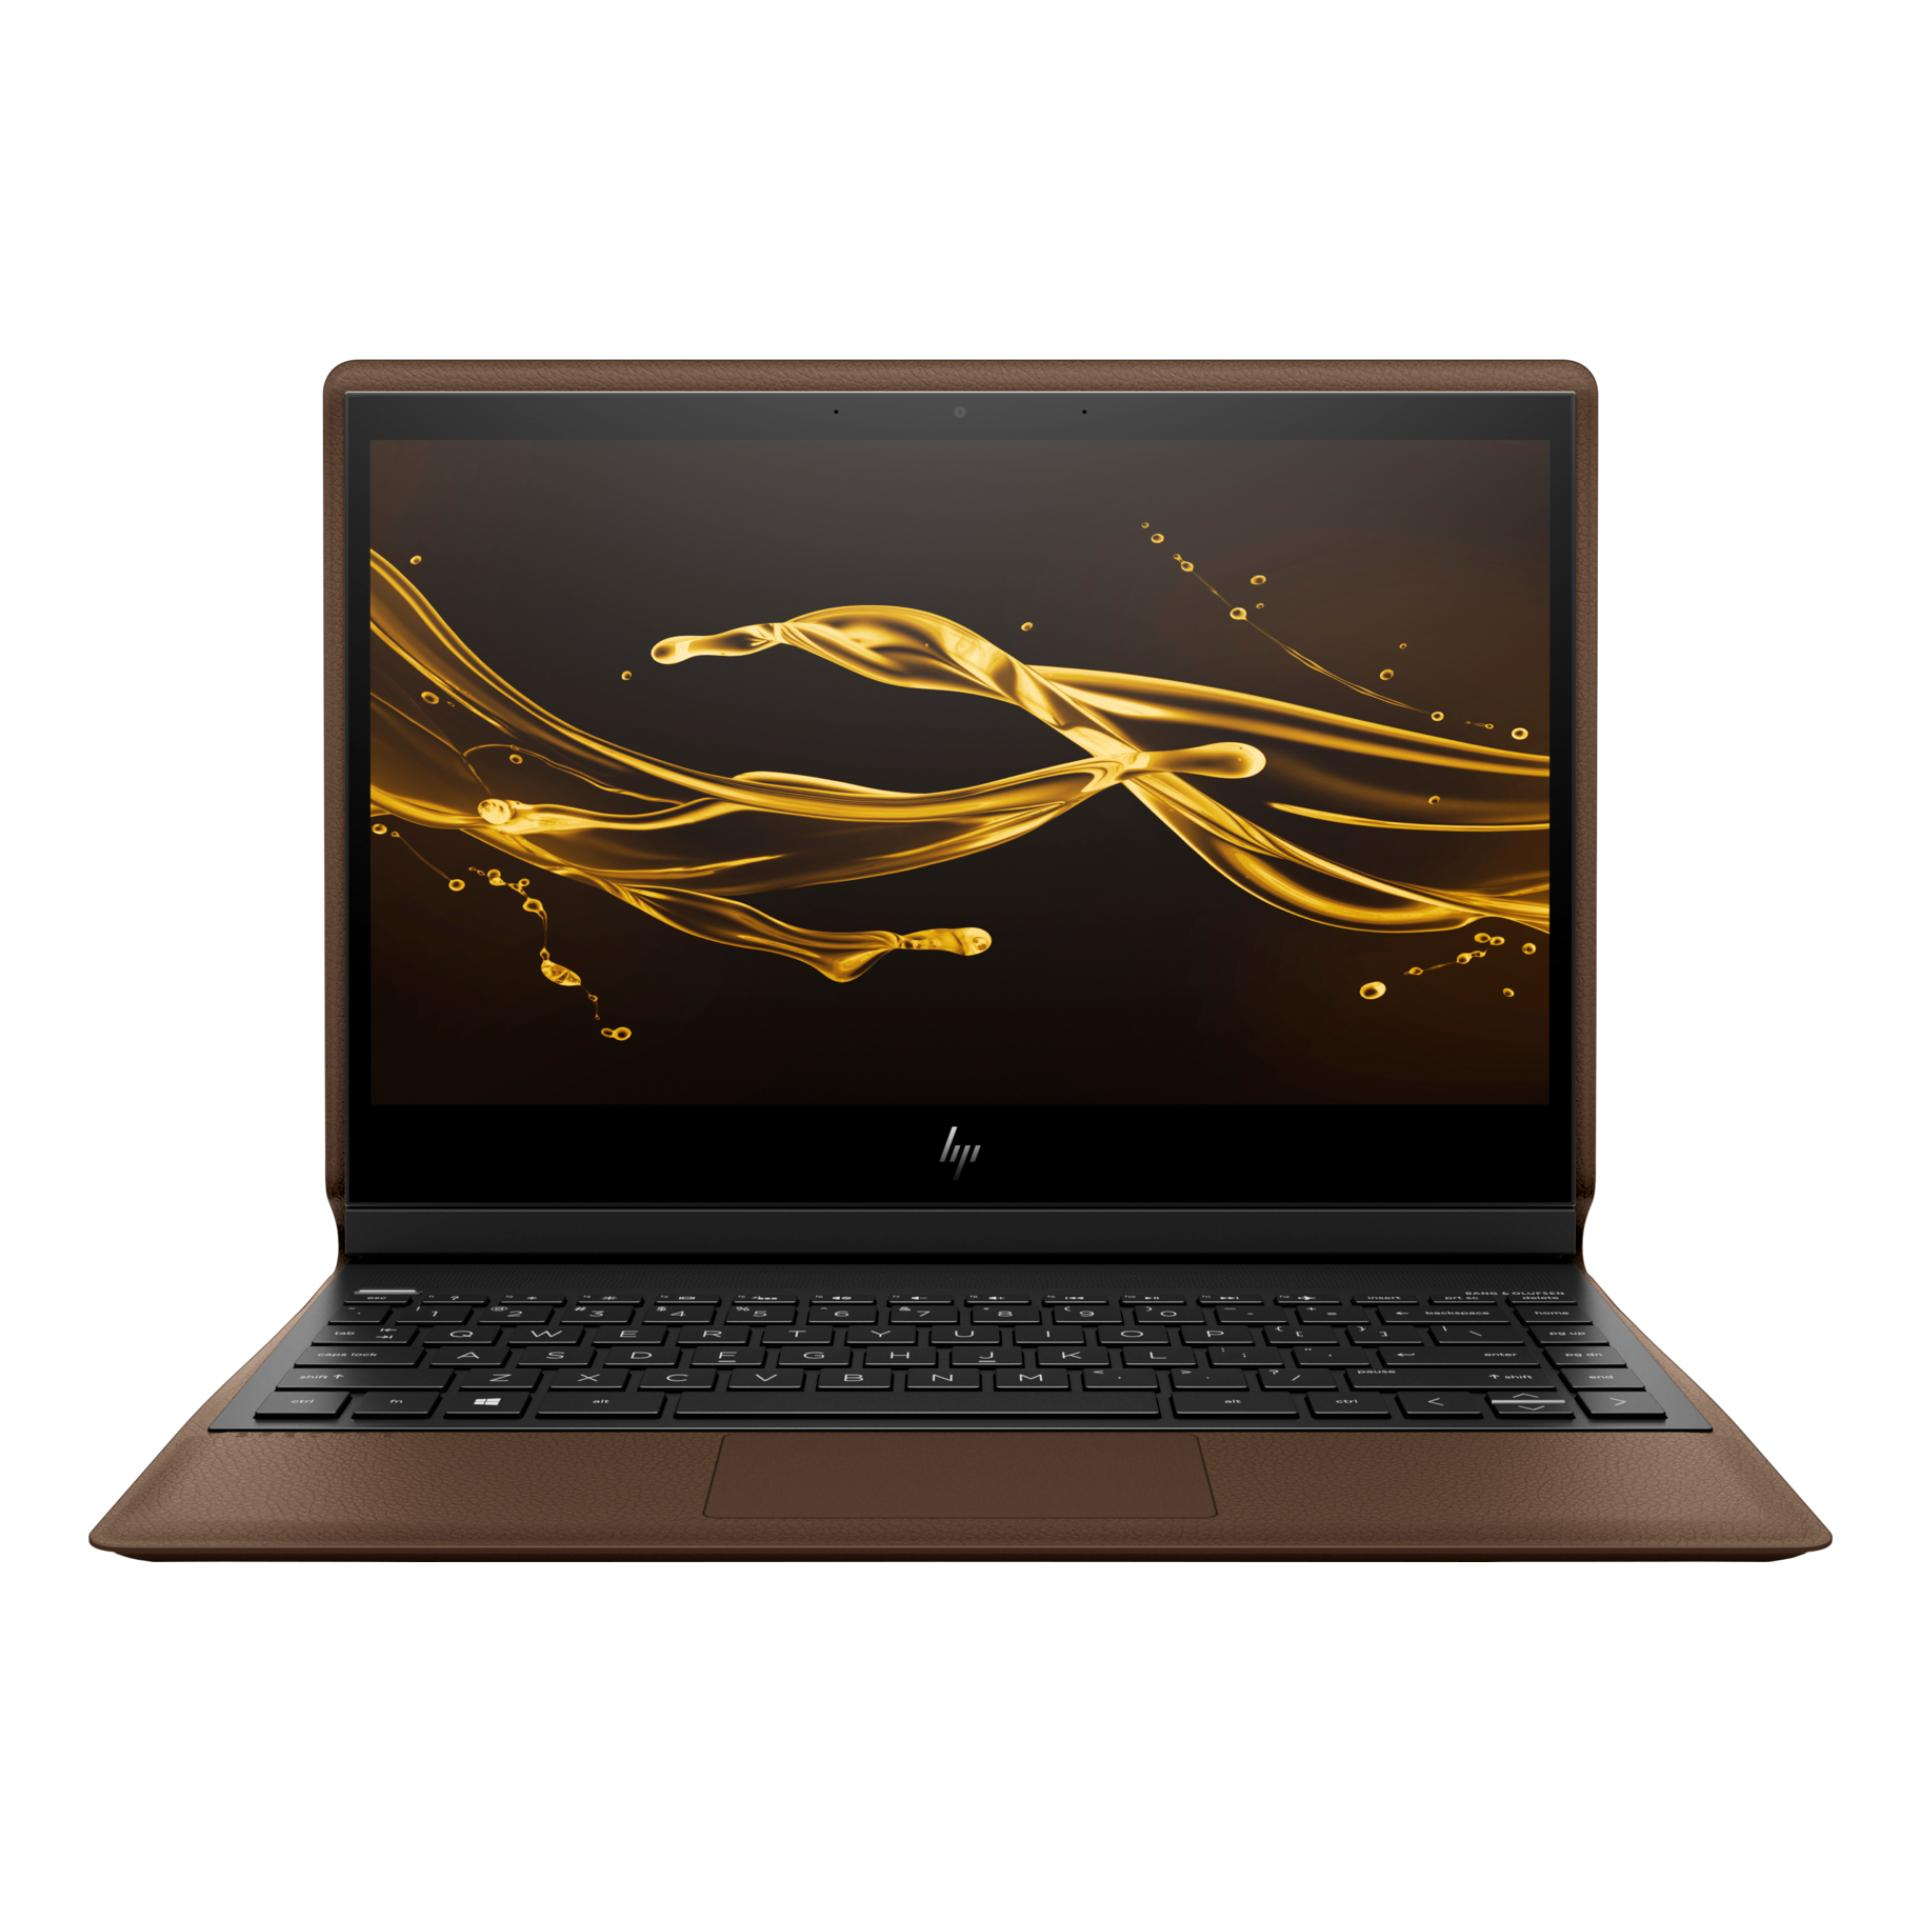 HP Spectre Folio - 13-ak0024tu/ Intel® Core™ i7-8500Y/ 16 GB RAM/ 512 SSD / WIN 10